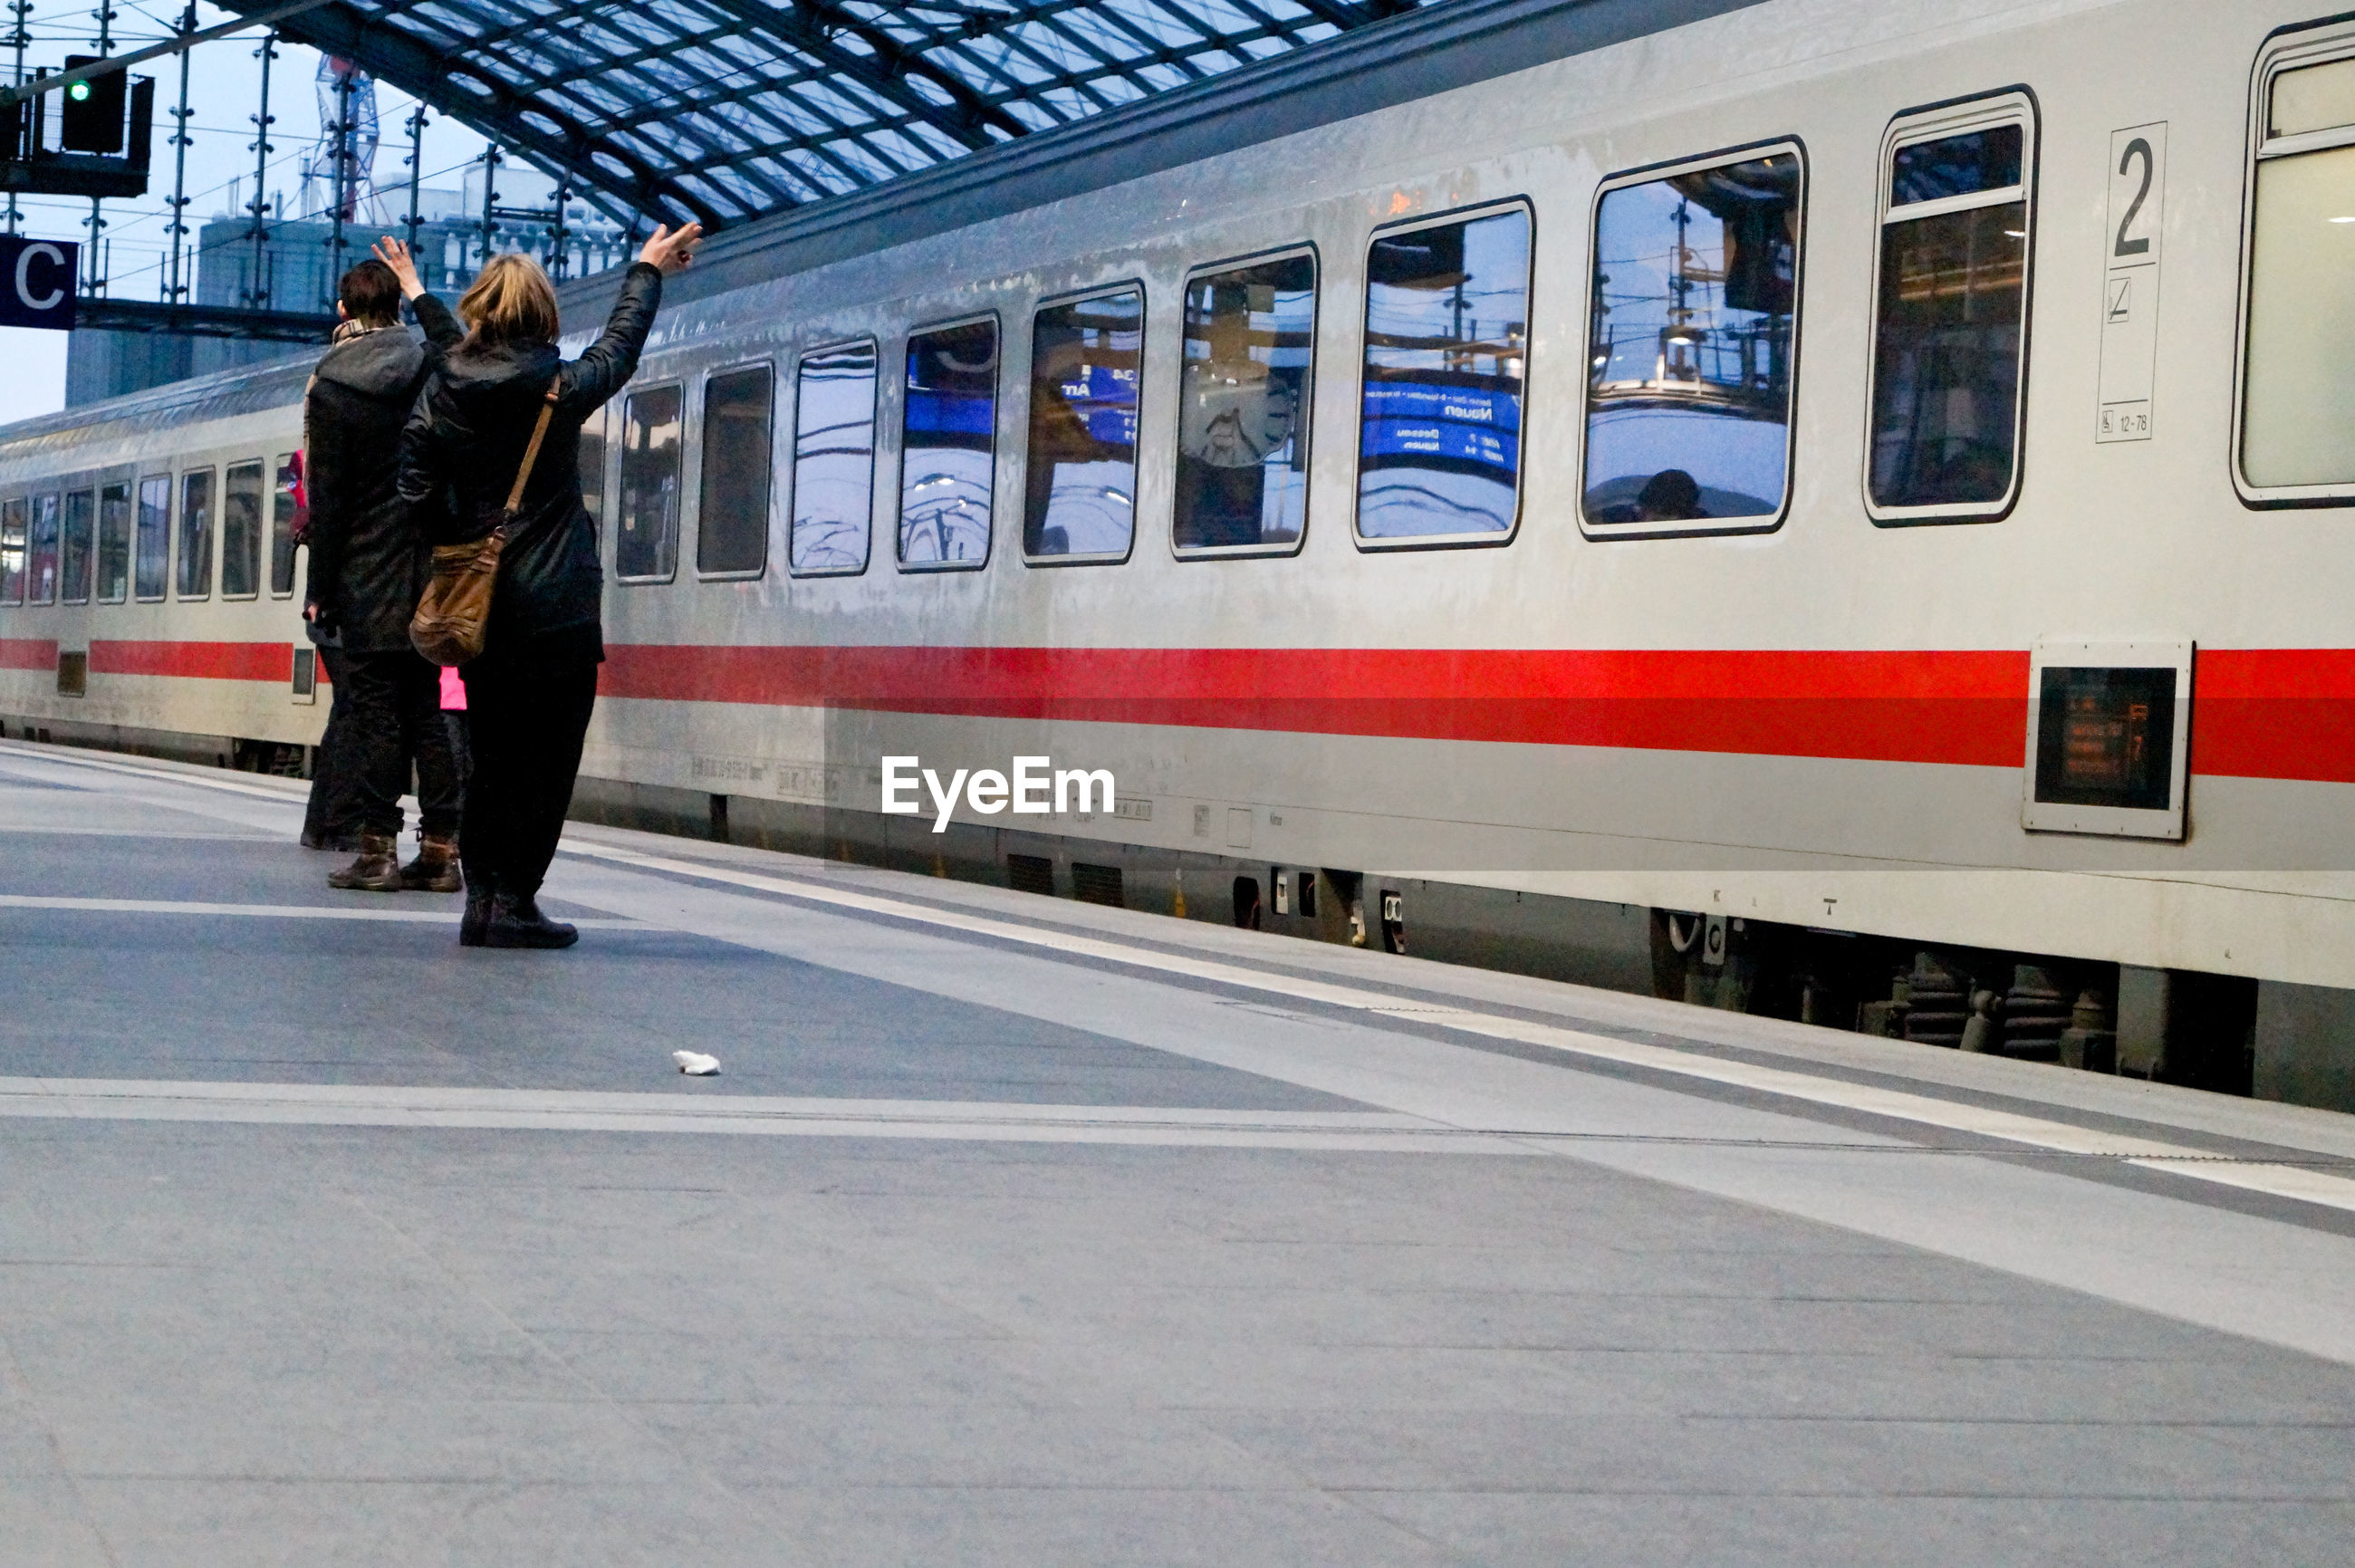 Rear view of people waving while standing at railroad station platform